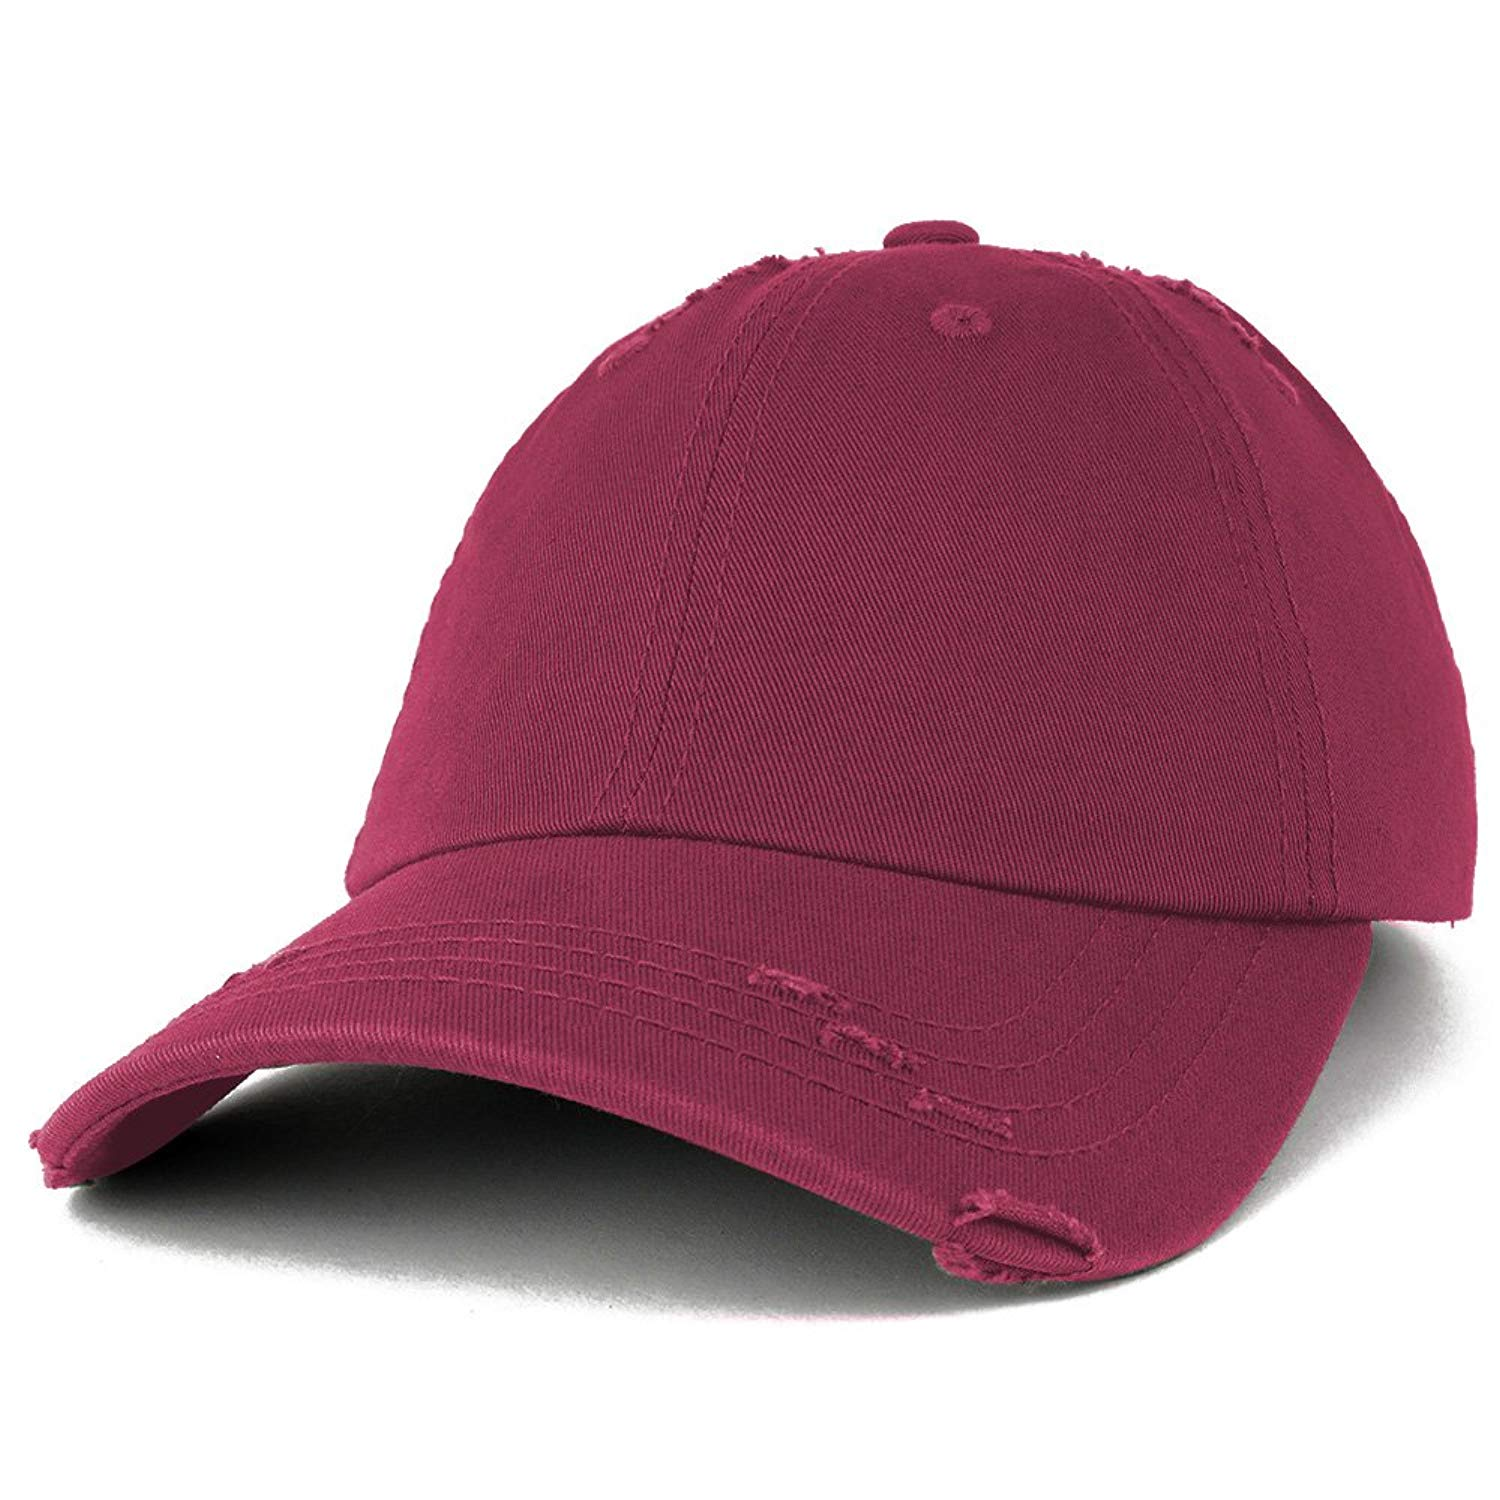 4890292741c Get Quotations · Vintage Frayed Unstructured Adjustable Polo Cap